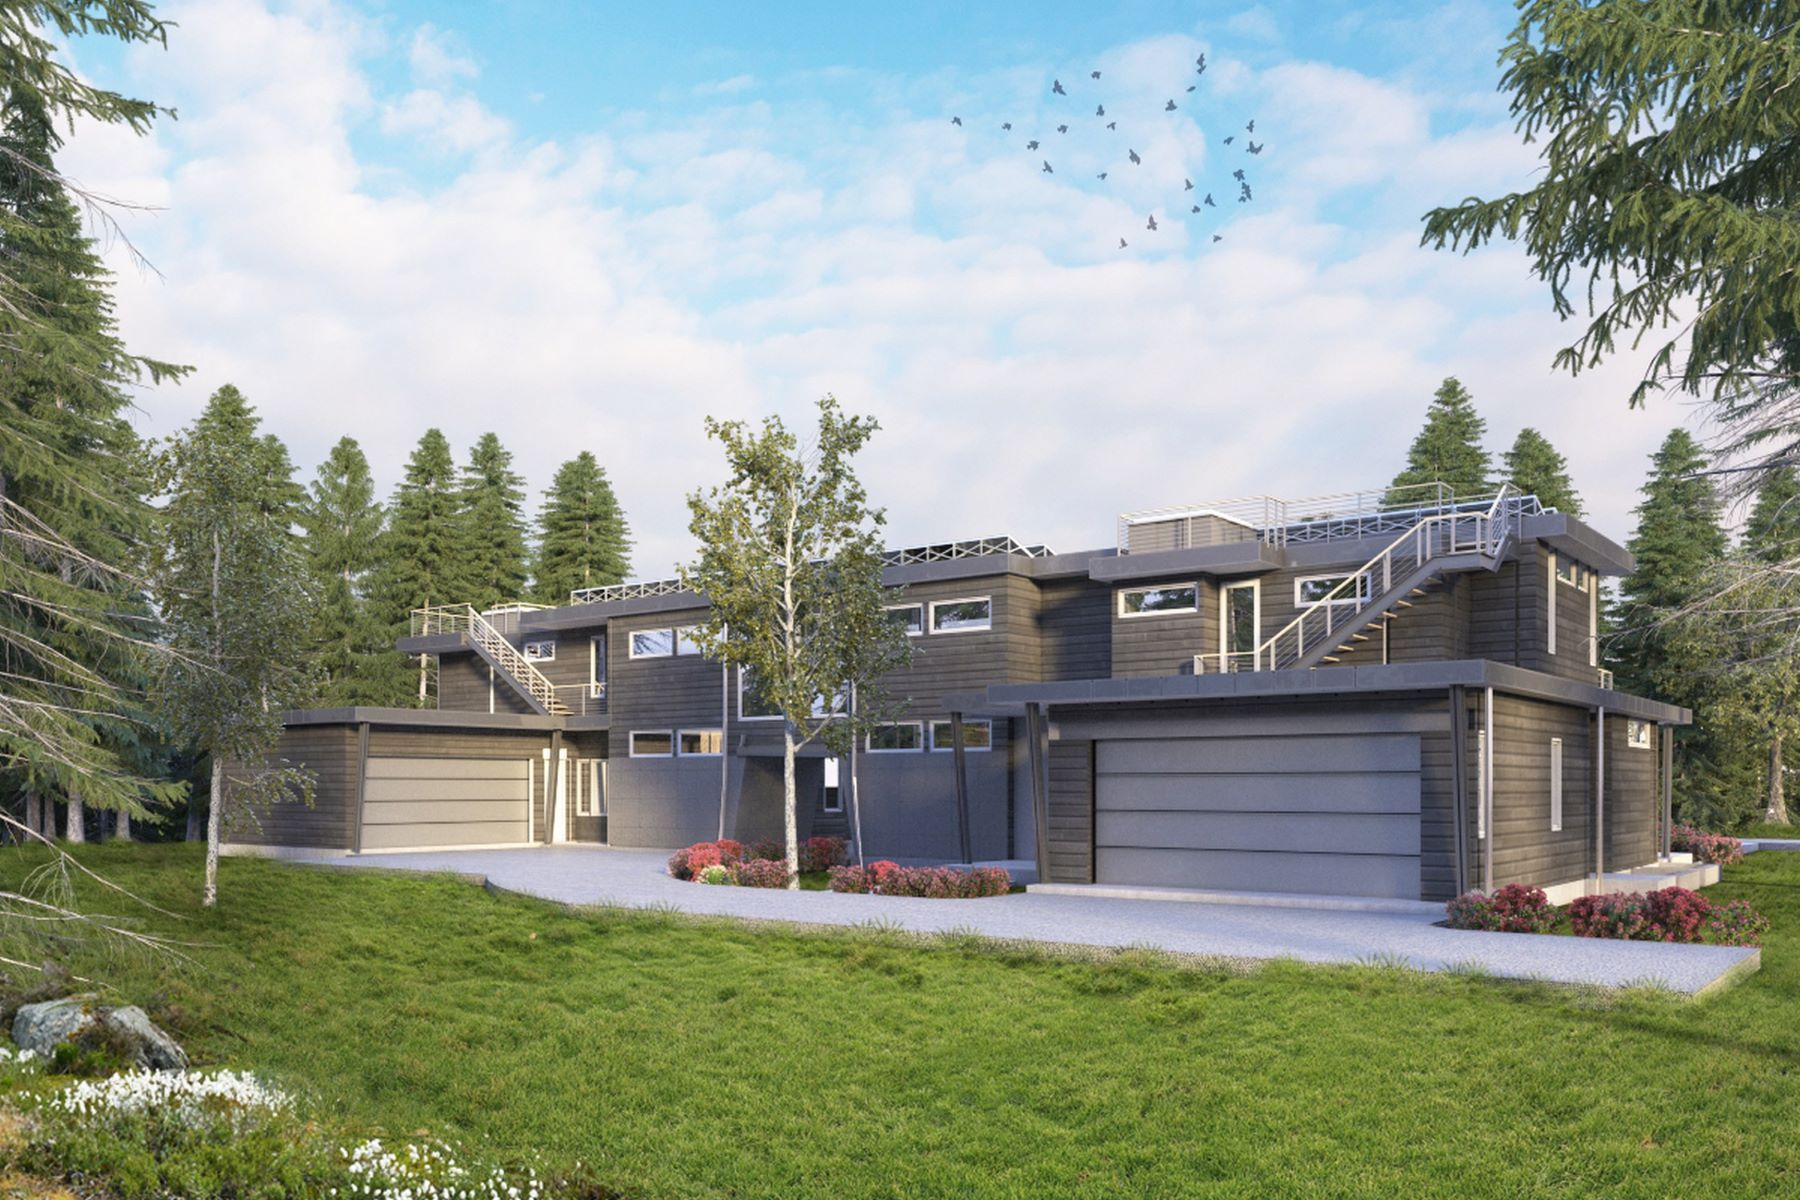 Dôi vì Bán tại Brand New Contemporary with Front Row Views 1510 Homestake Drive West Aspen, Aspen, Colorado, 81611 Hoa Kỳ